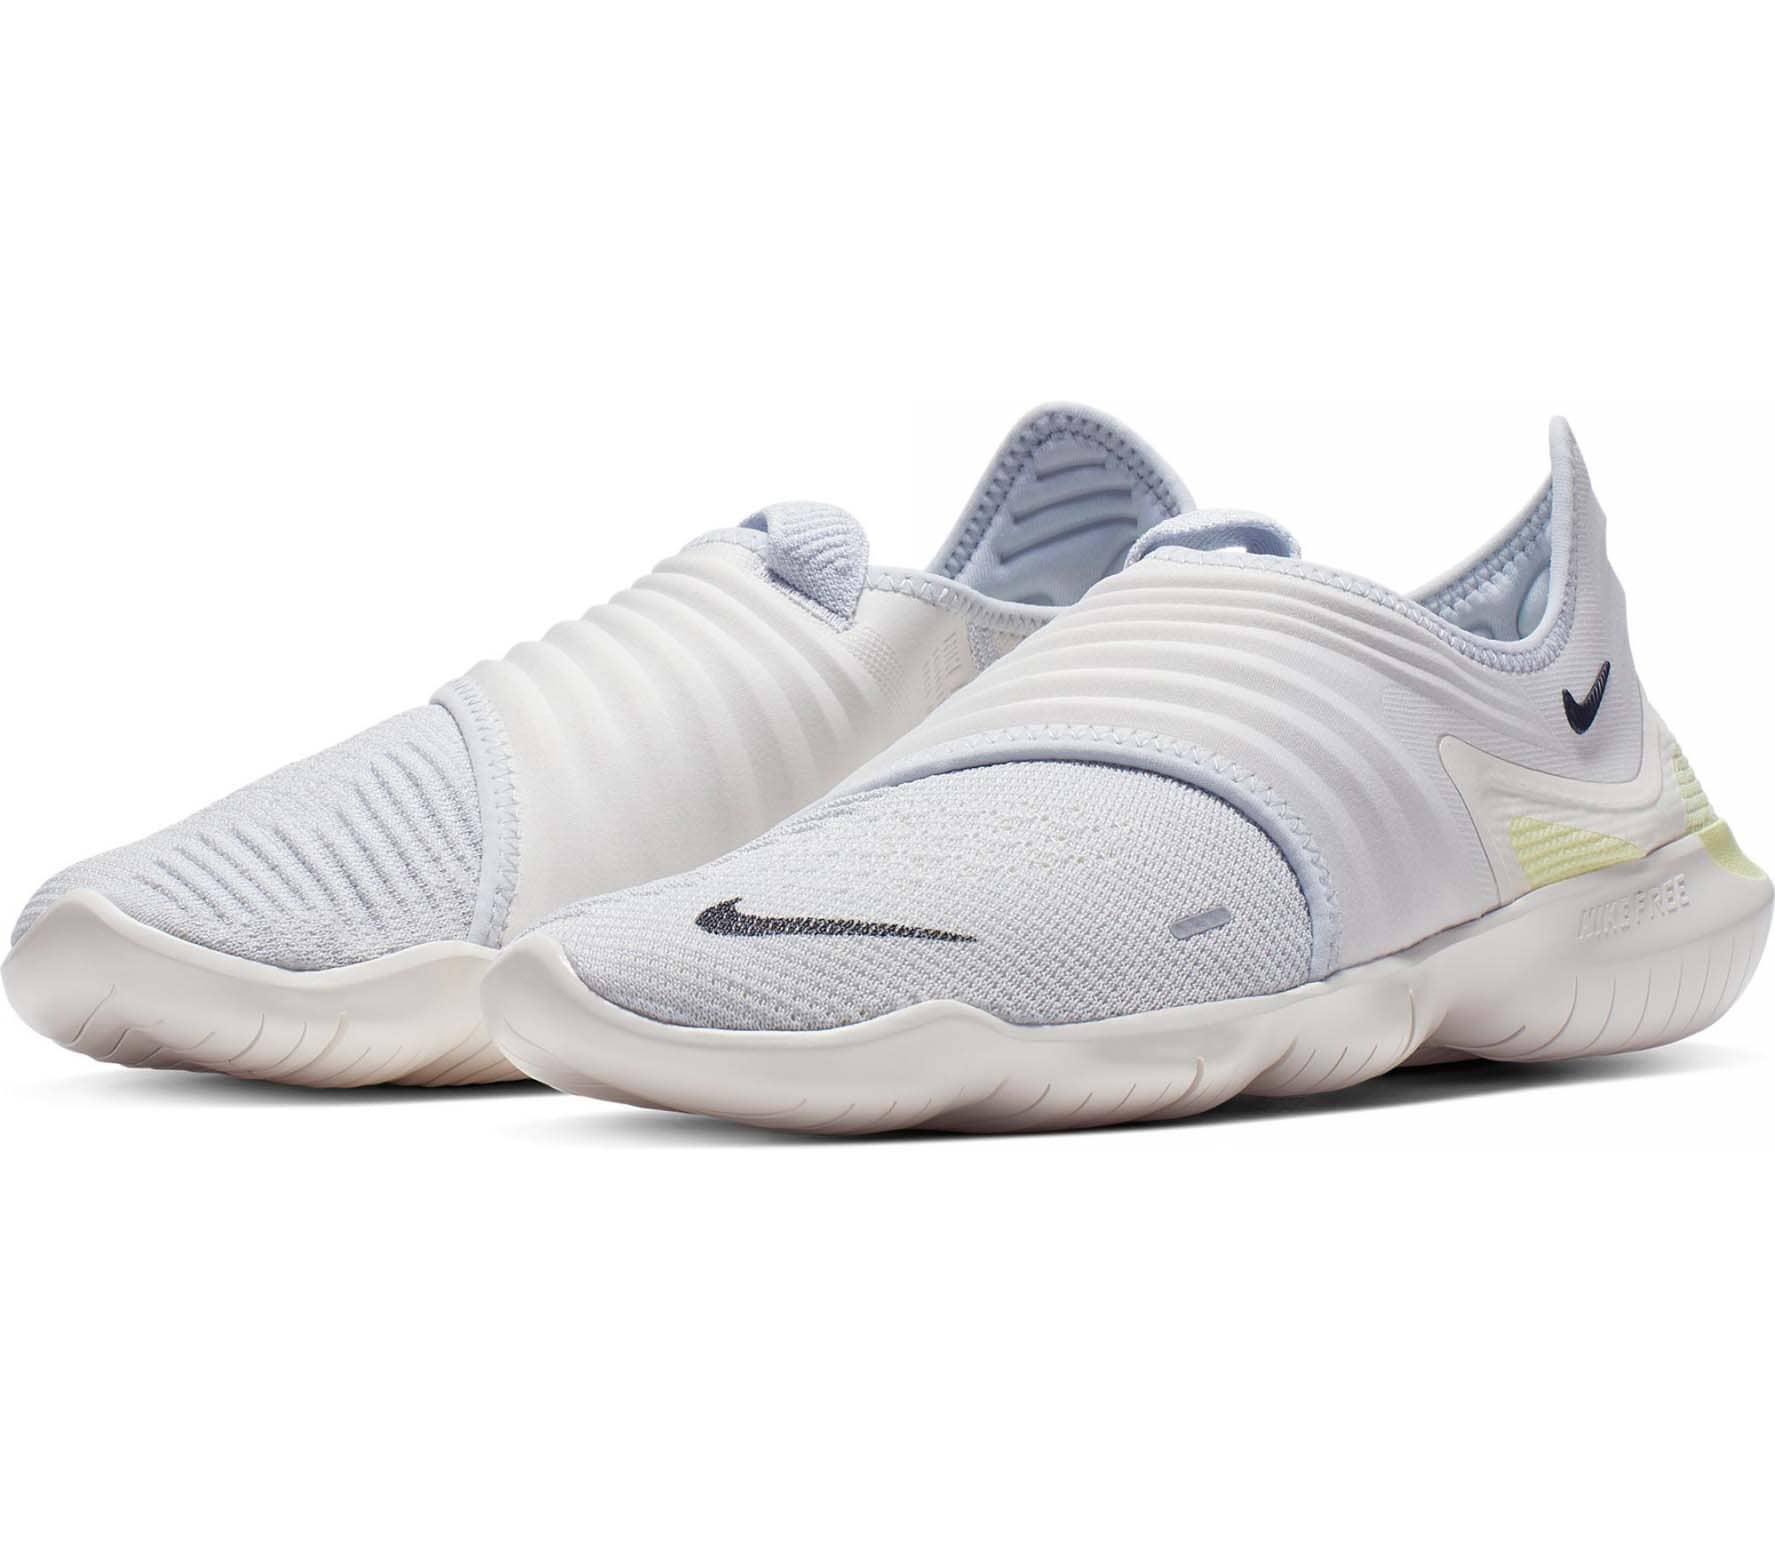 new concept b3ca8 ba897 Nike Free RN Flyknit 3.0 Hommes Chaussures running blanc